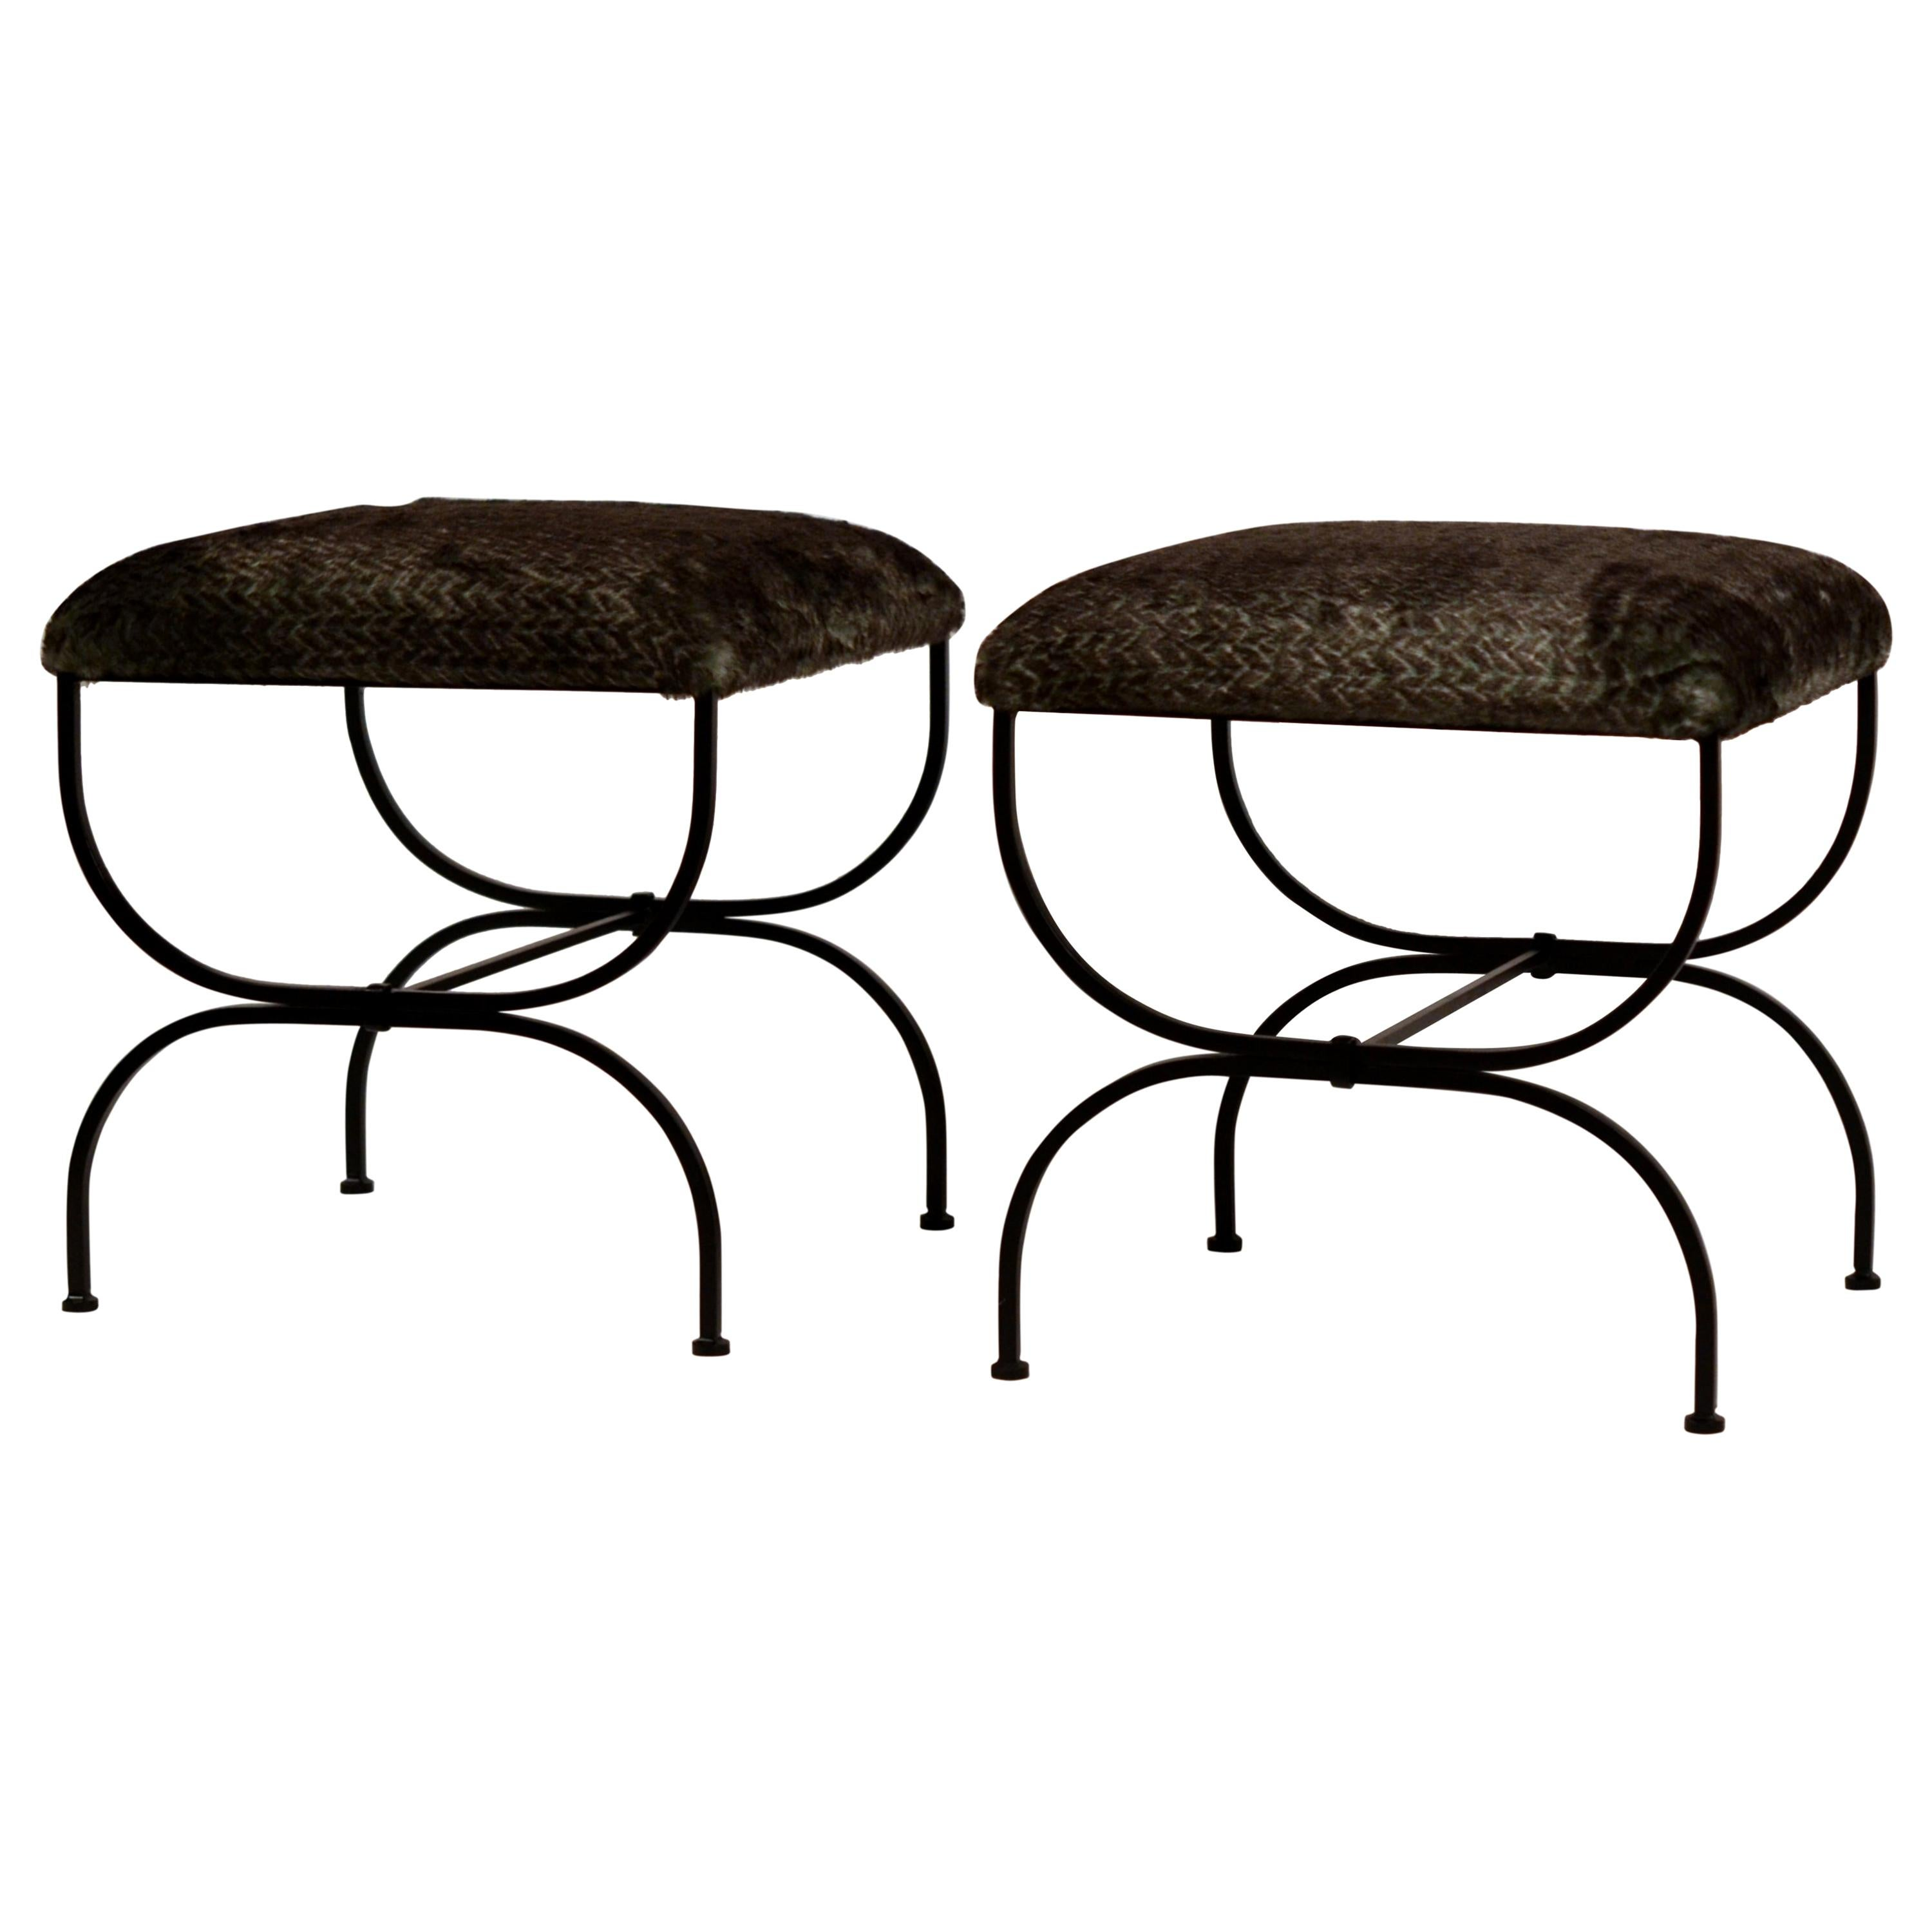 Pair of Large Faux Fur 'Strapontin' Stools by Design Frères